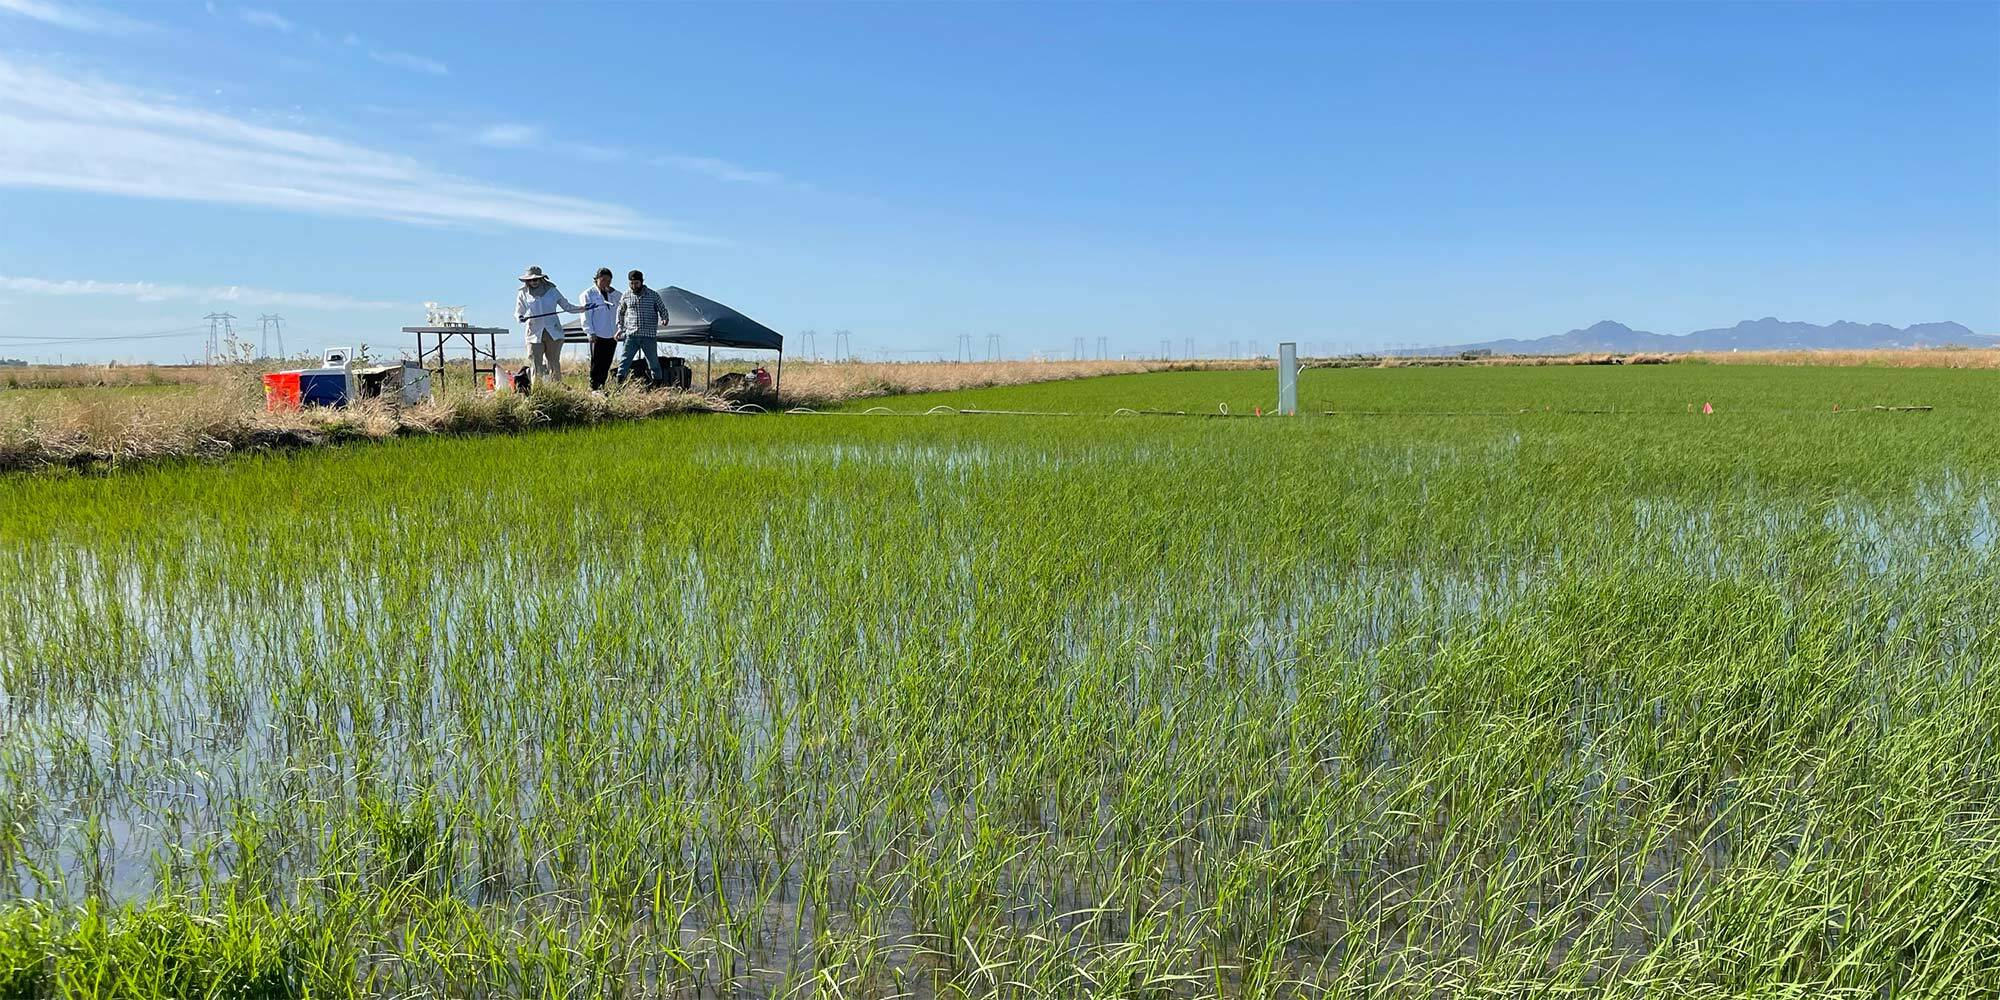 Jill Banfield and colleagues in a rice field